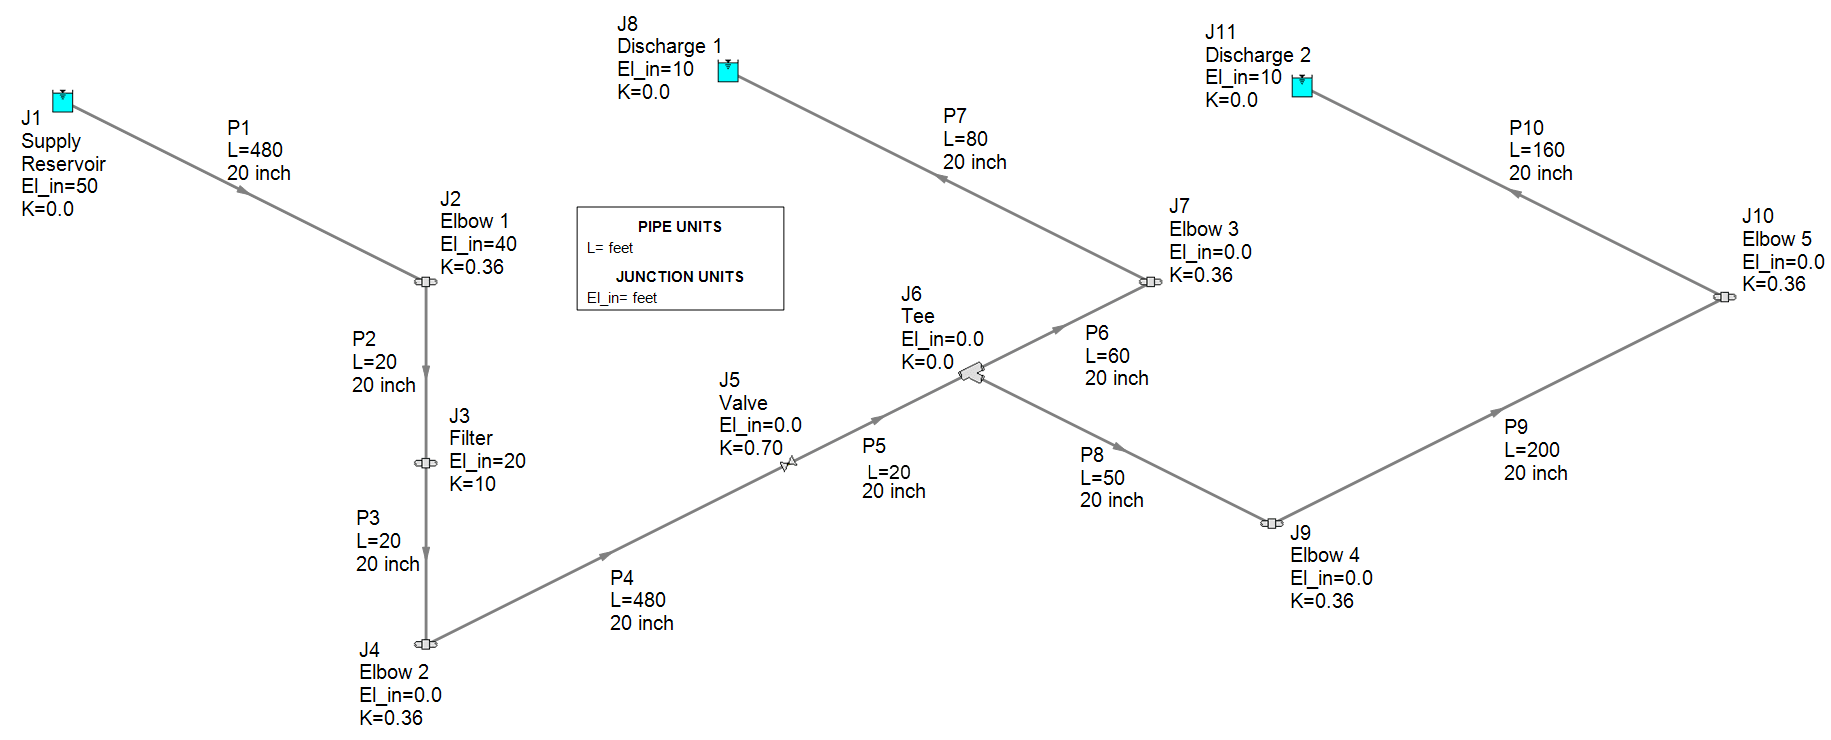 hight resolution of figure 1 complex piping system with junctions used to model point losses at the filter and elbows elevation changes and direction changes